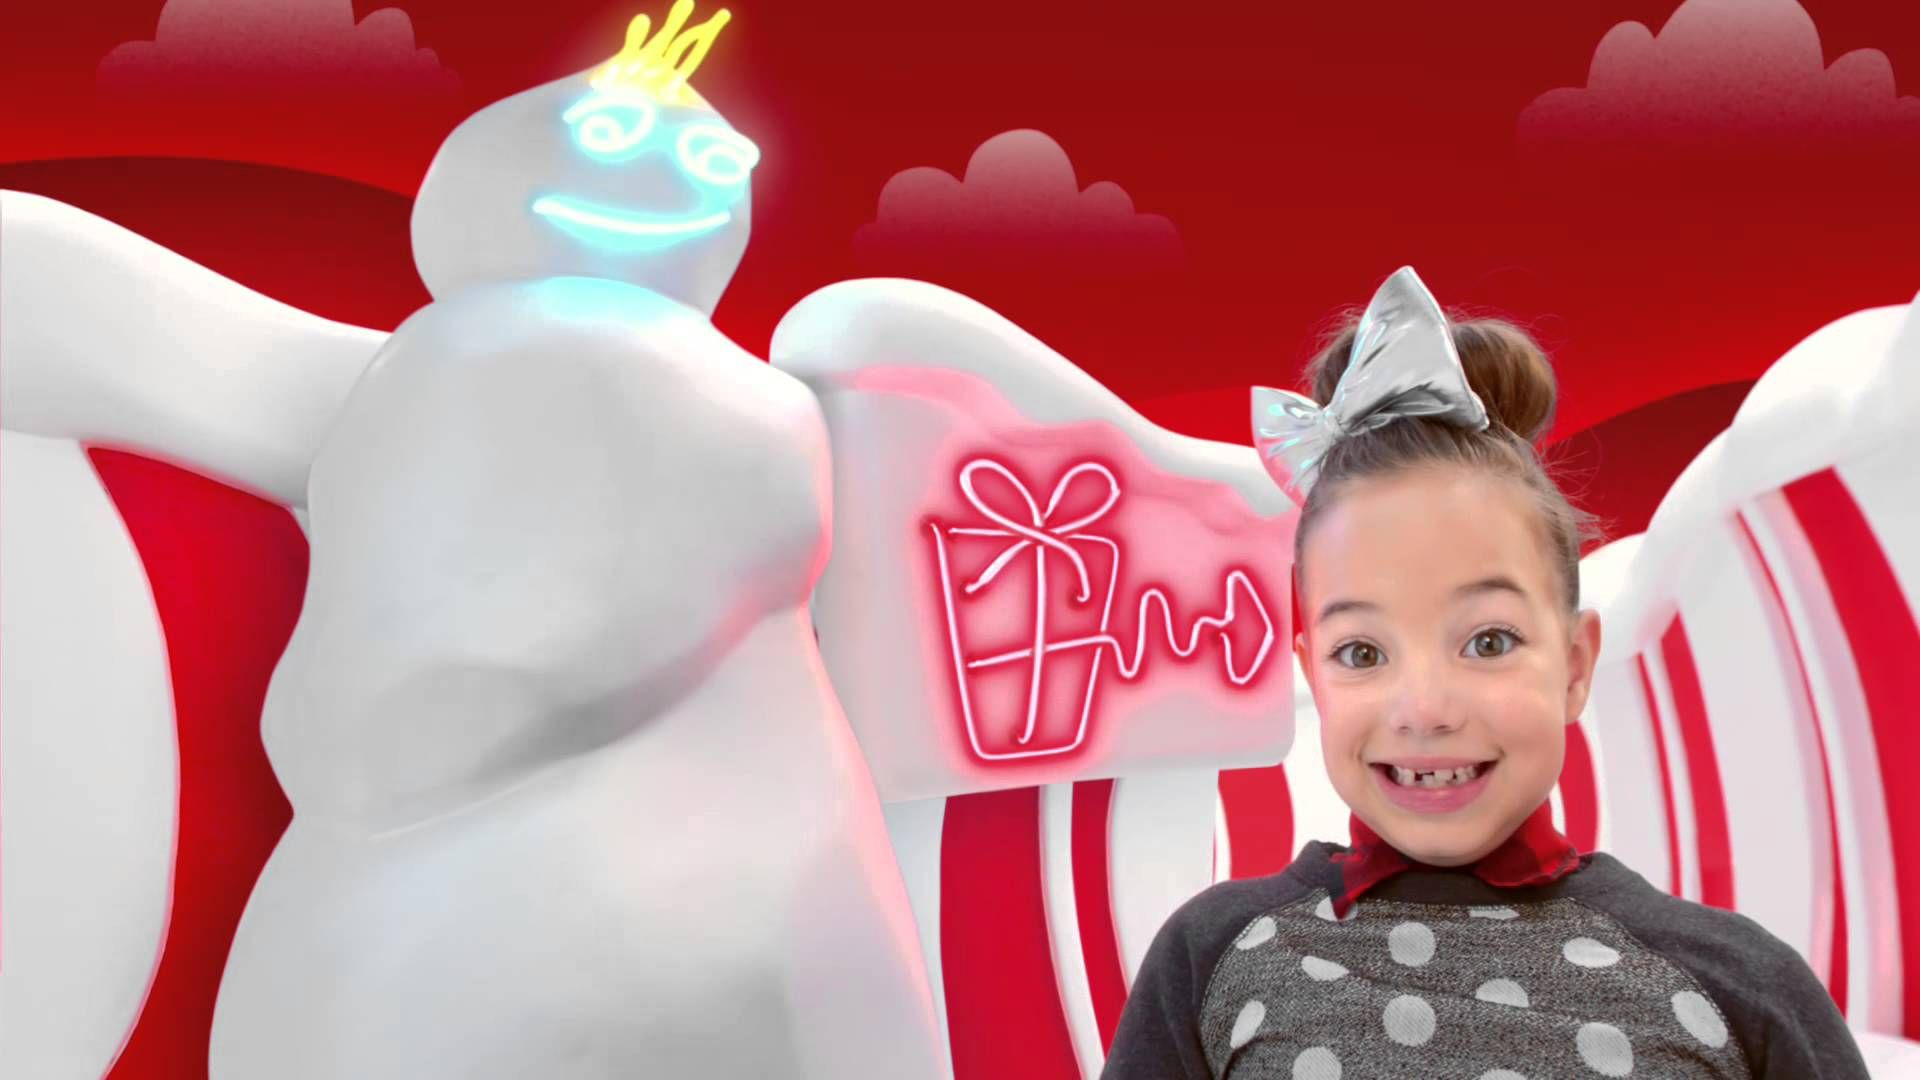 Target Christmas Commercial.Target Holiday 2014 Alice In Marshmallow Land Target